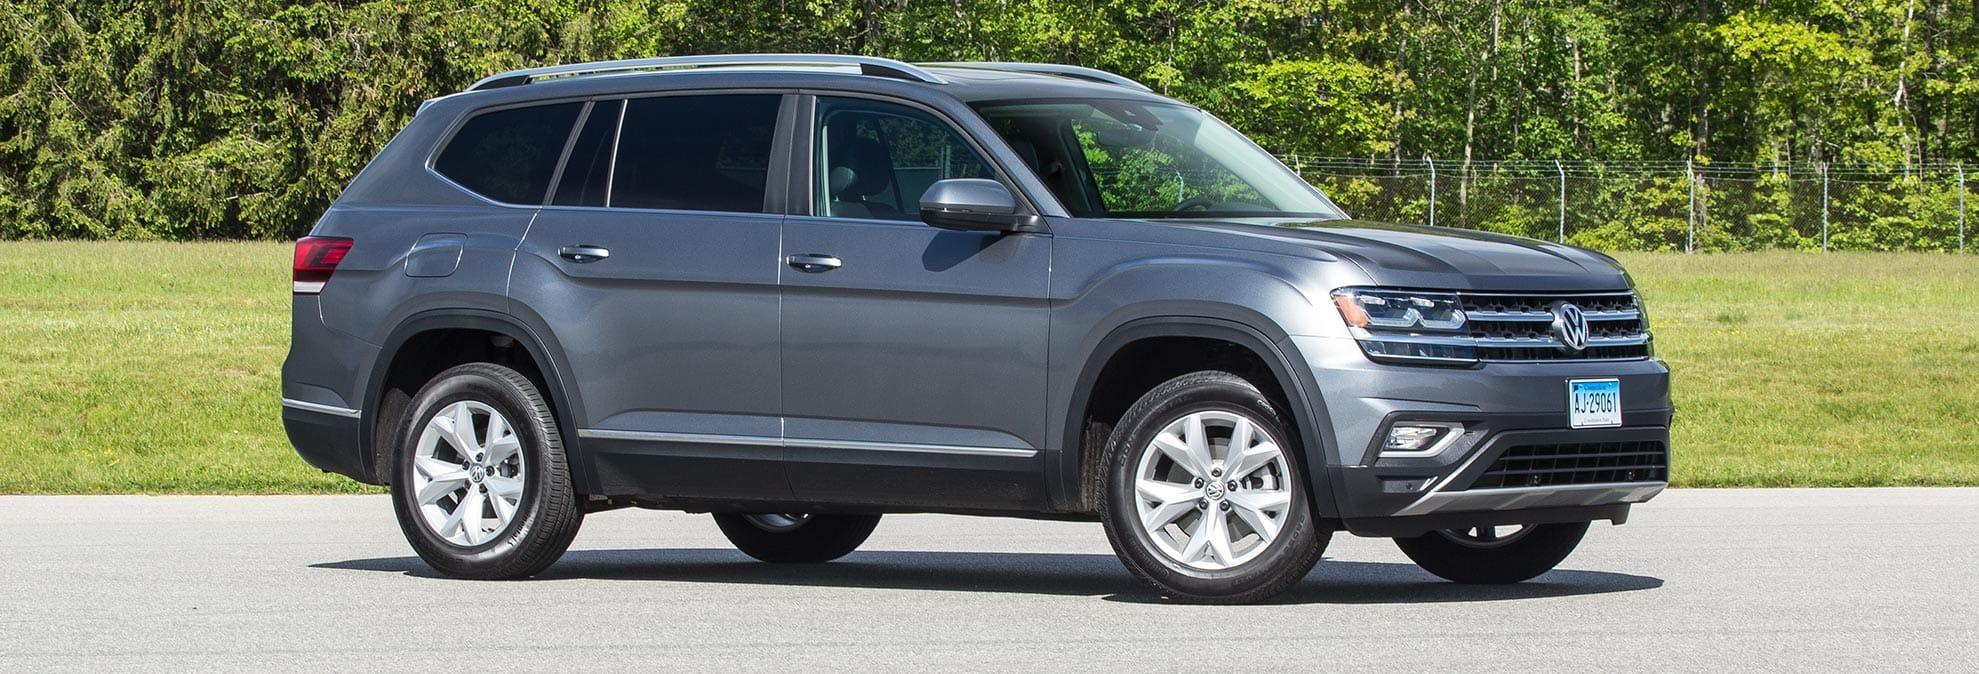 2018 volkswagen atlas is an suv done the american way. Black Bedroom Furniture Sets. Home Design Ideas